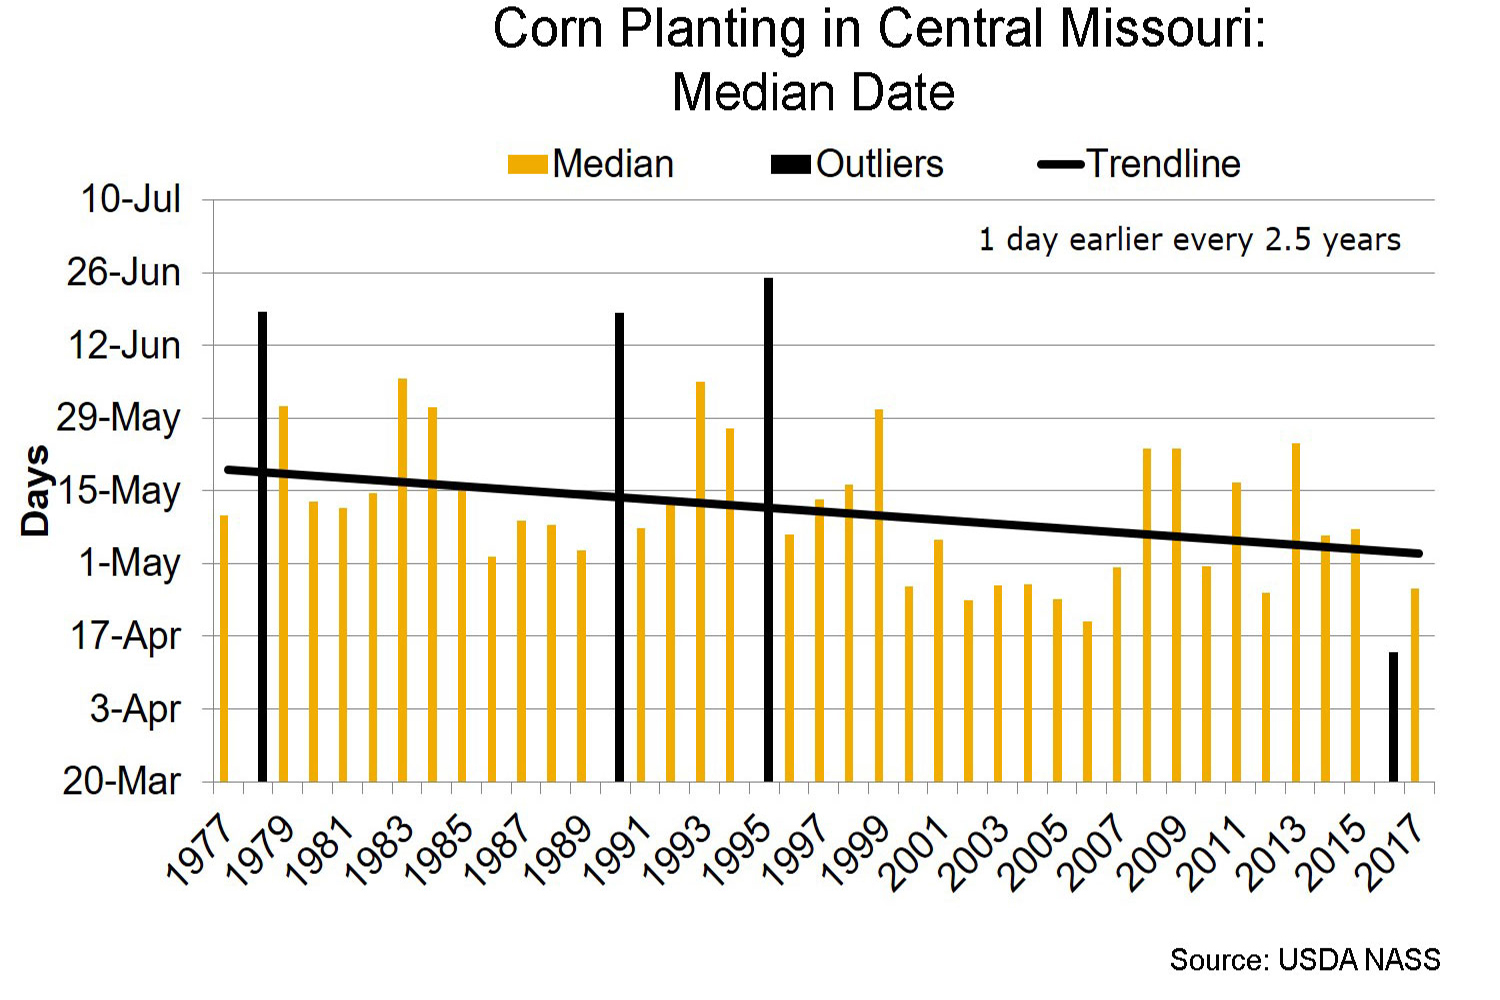 Corn planting in central Missouri median date chart